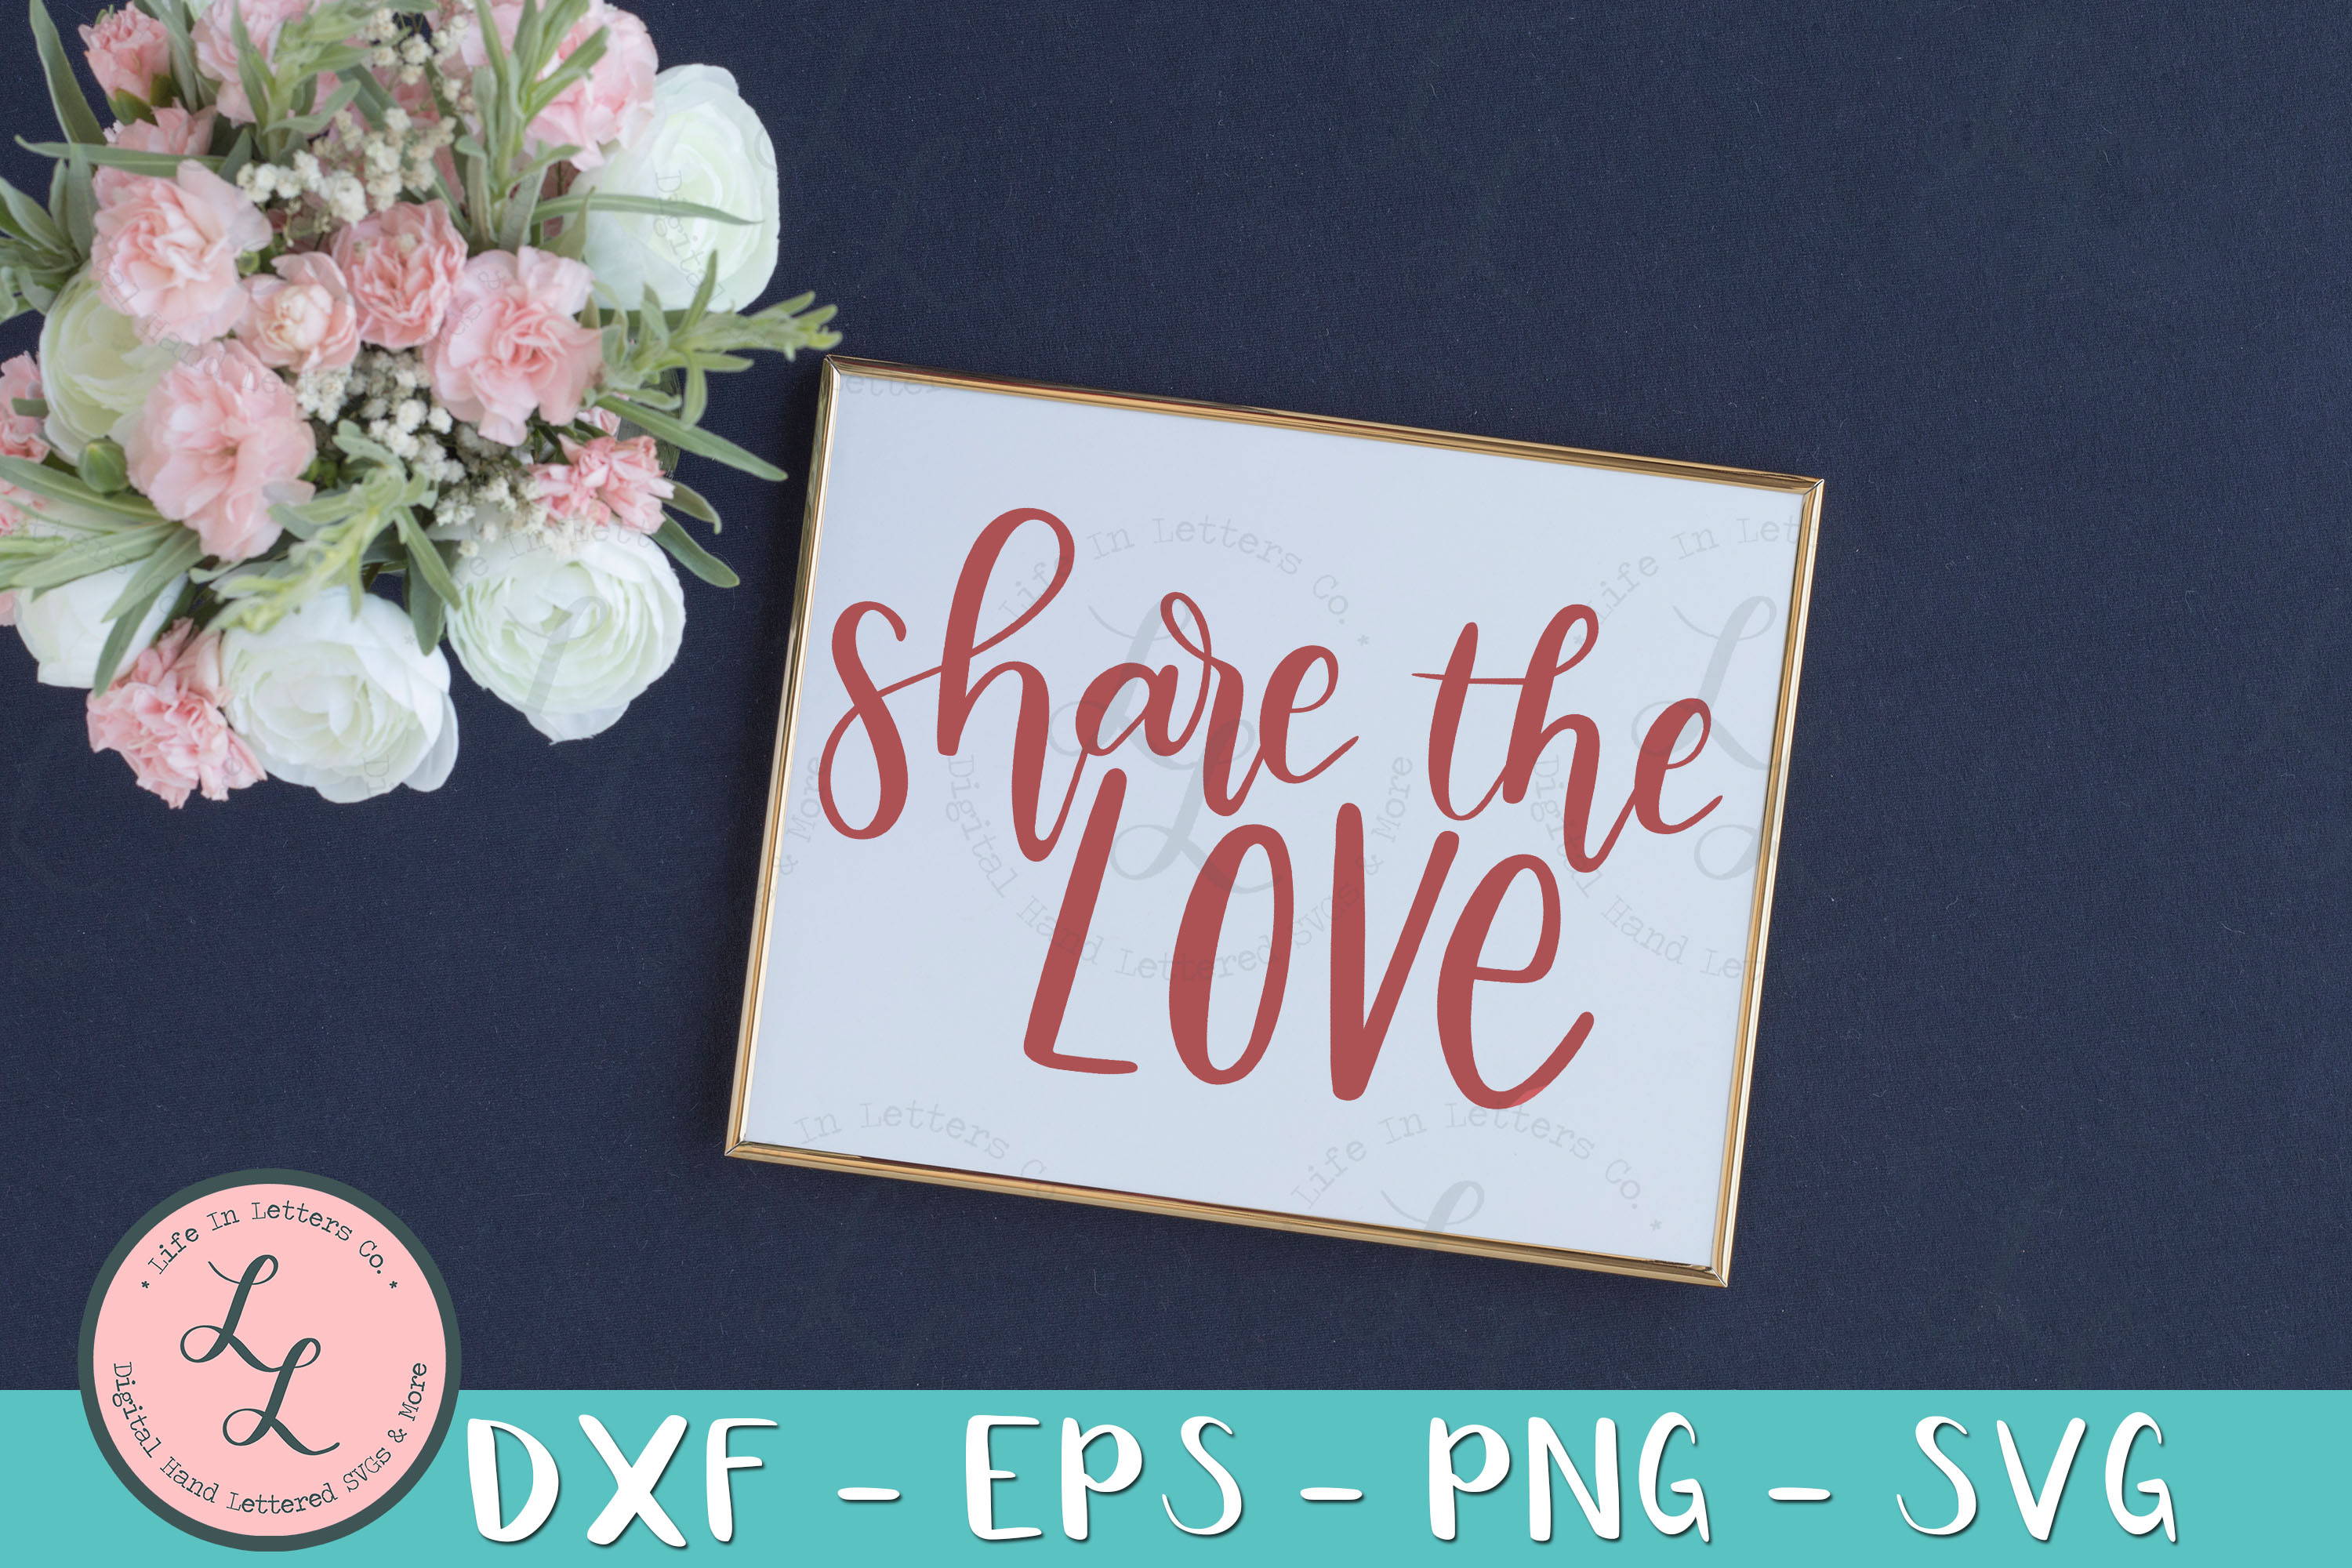 Share The Love- Hand Lettered Cut File SVG PNG EPS DXF example image 2